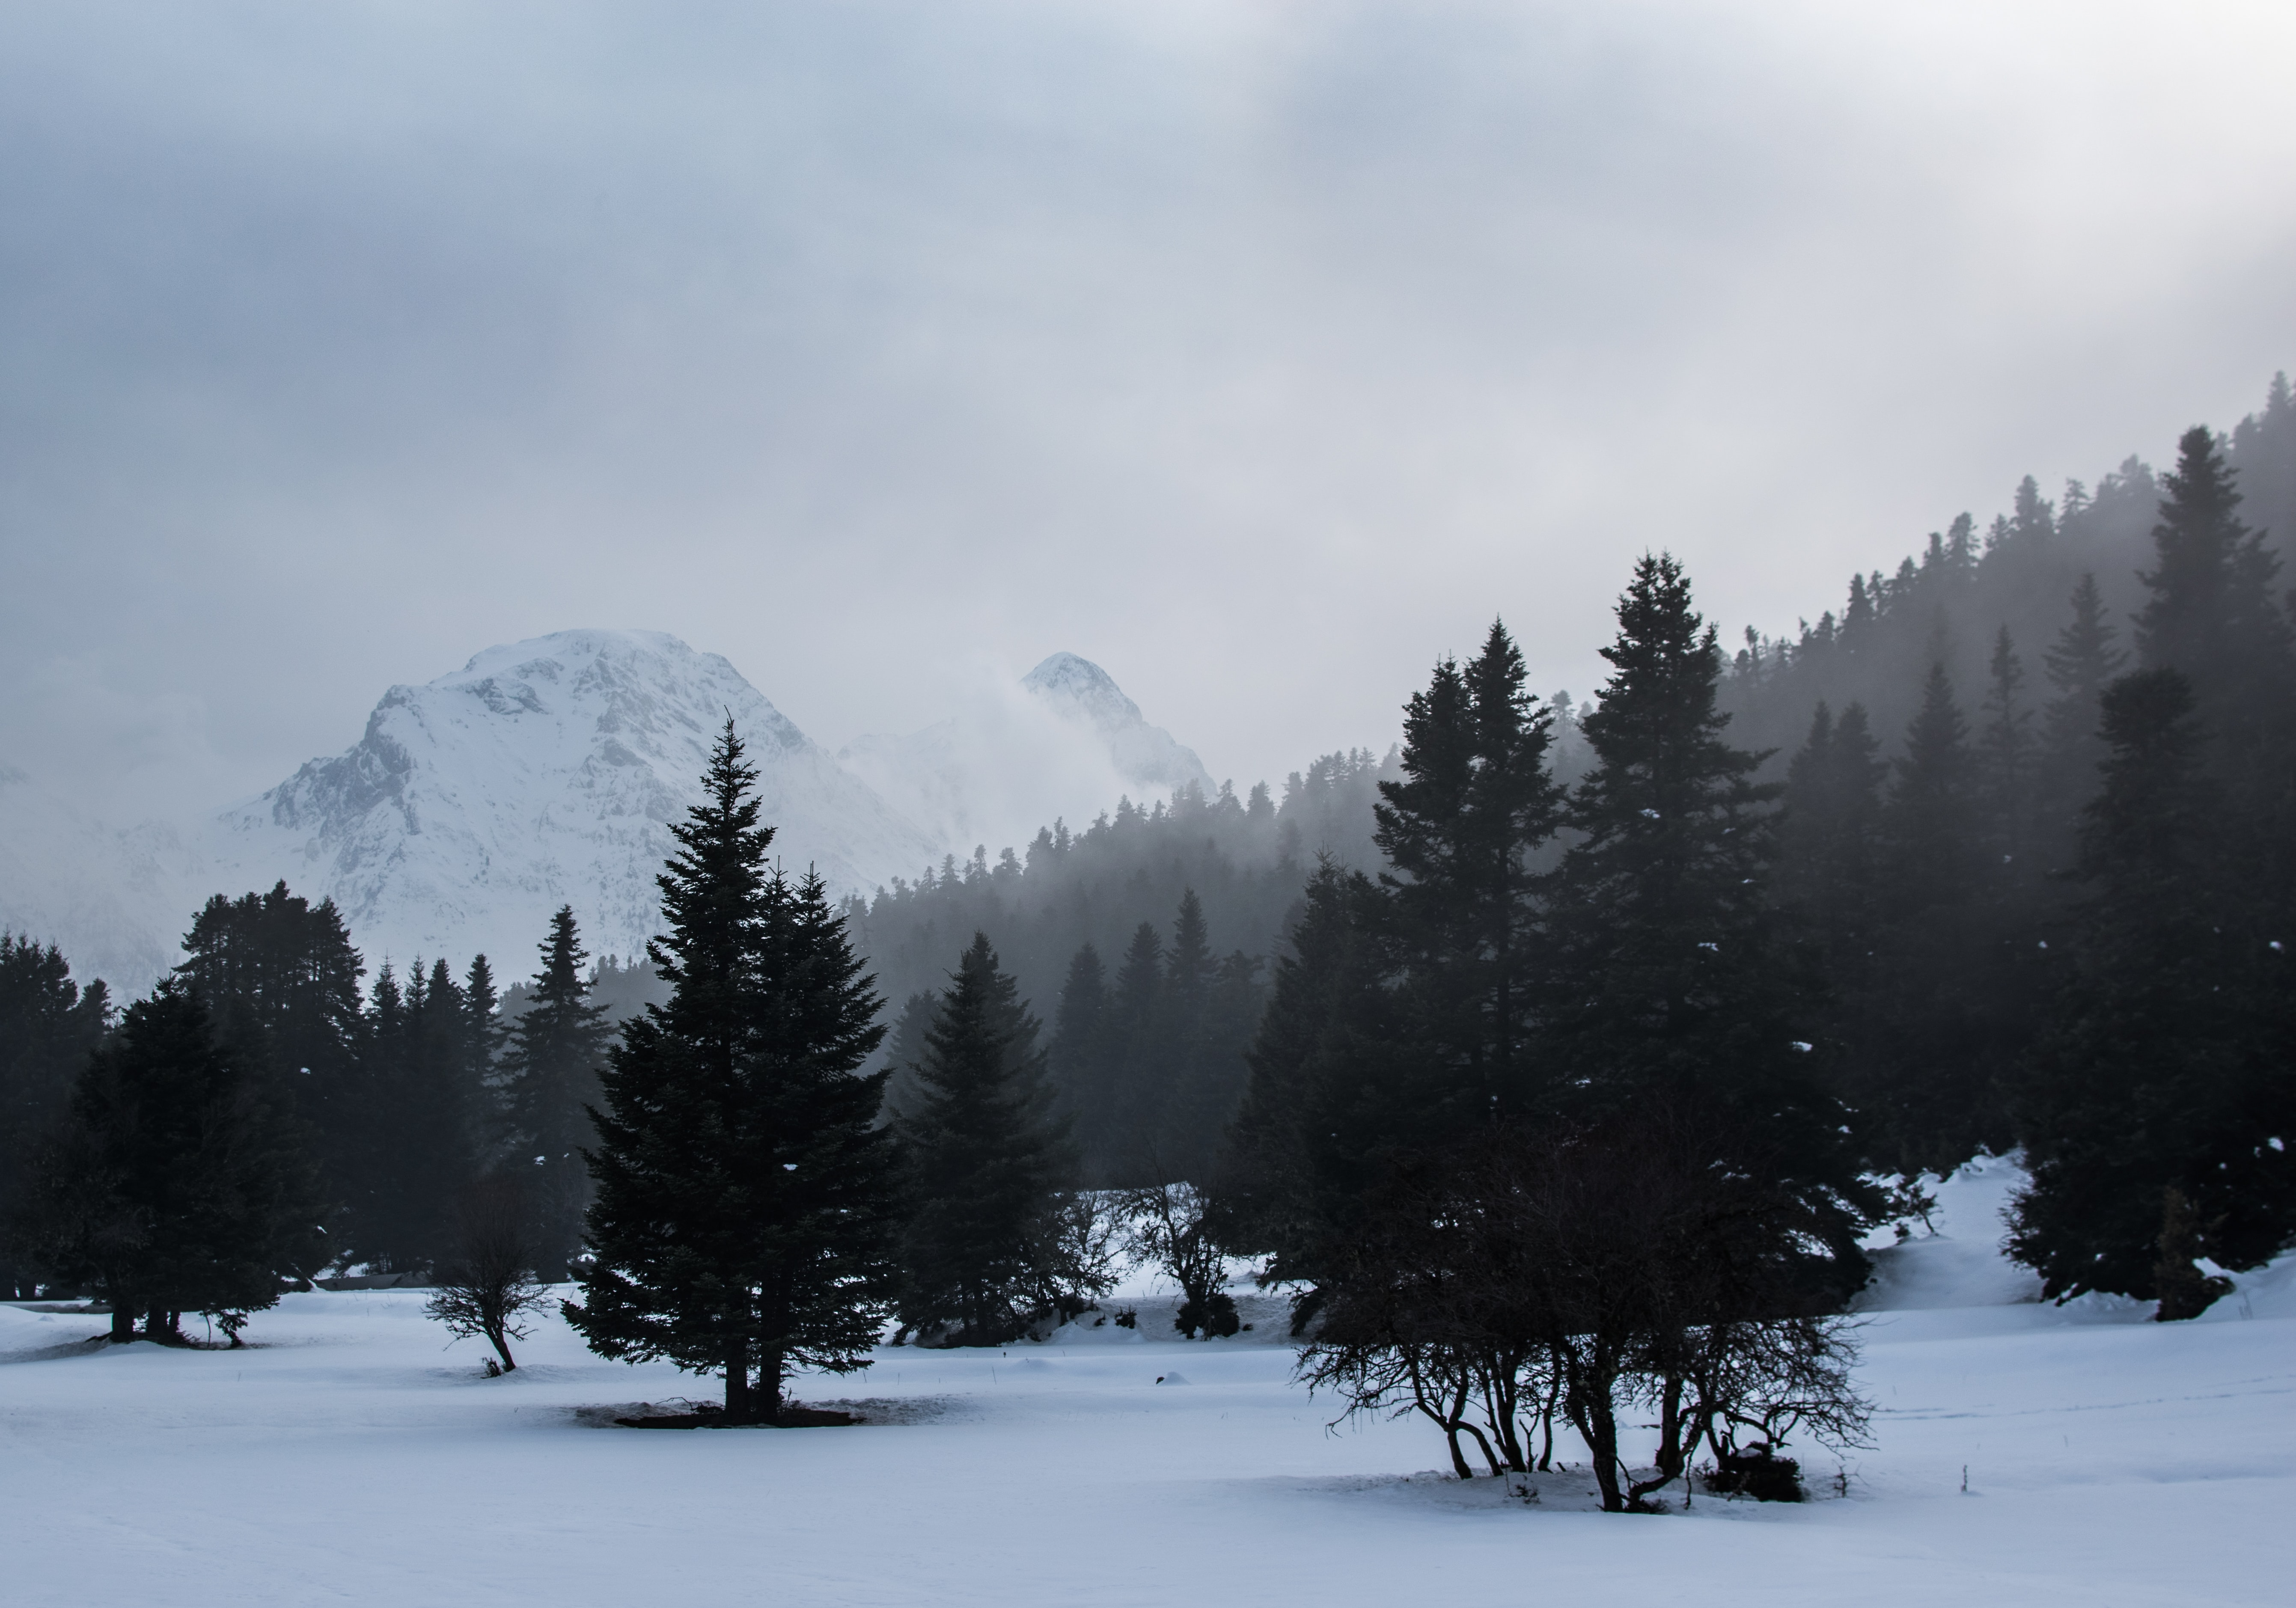 pine forest covered by snow and mist